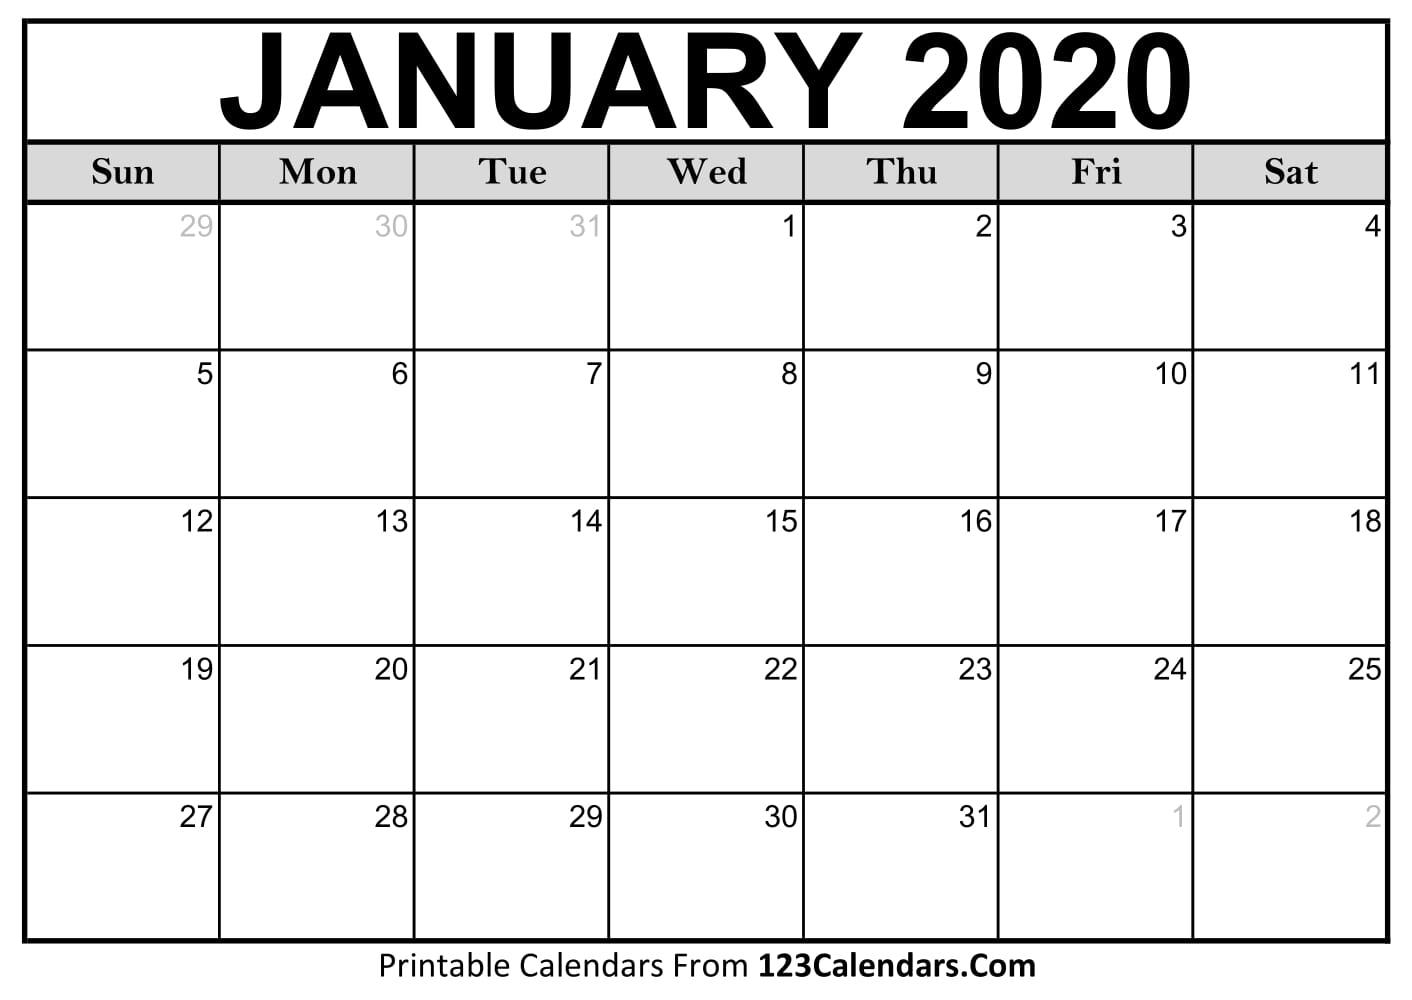 January 2020 Printable Calendar | 123Calendars throughout Blank 2020 Calendars To Edit